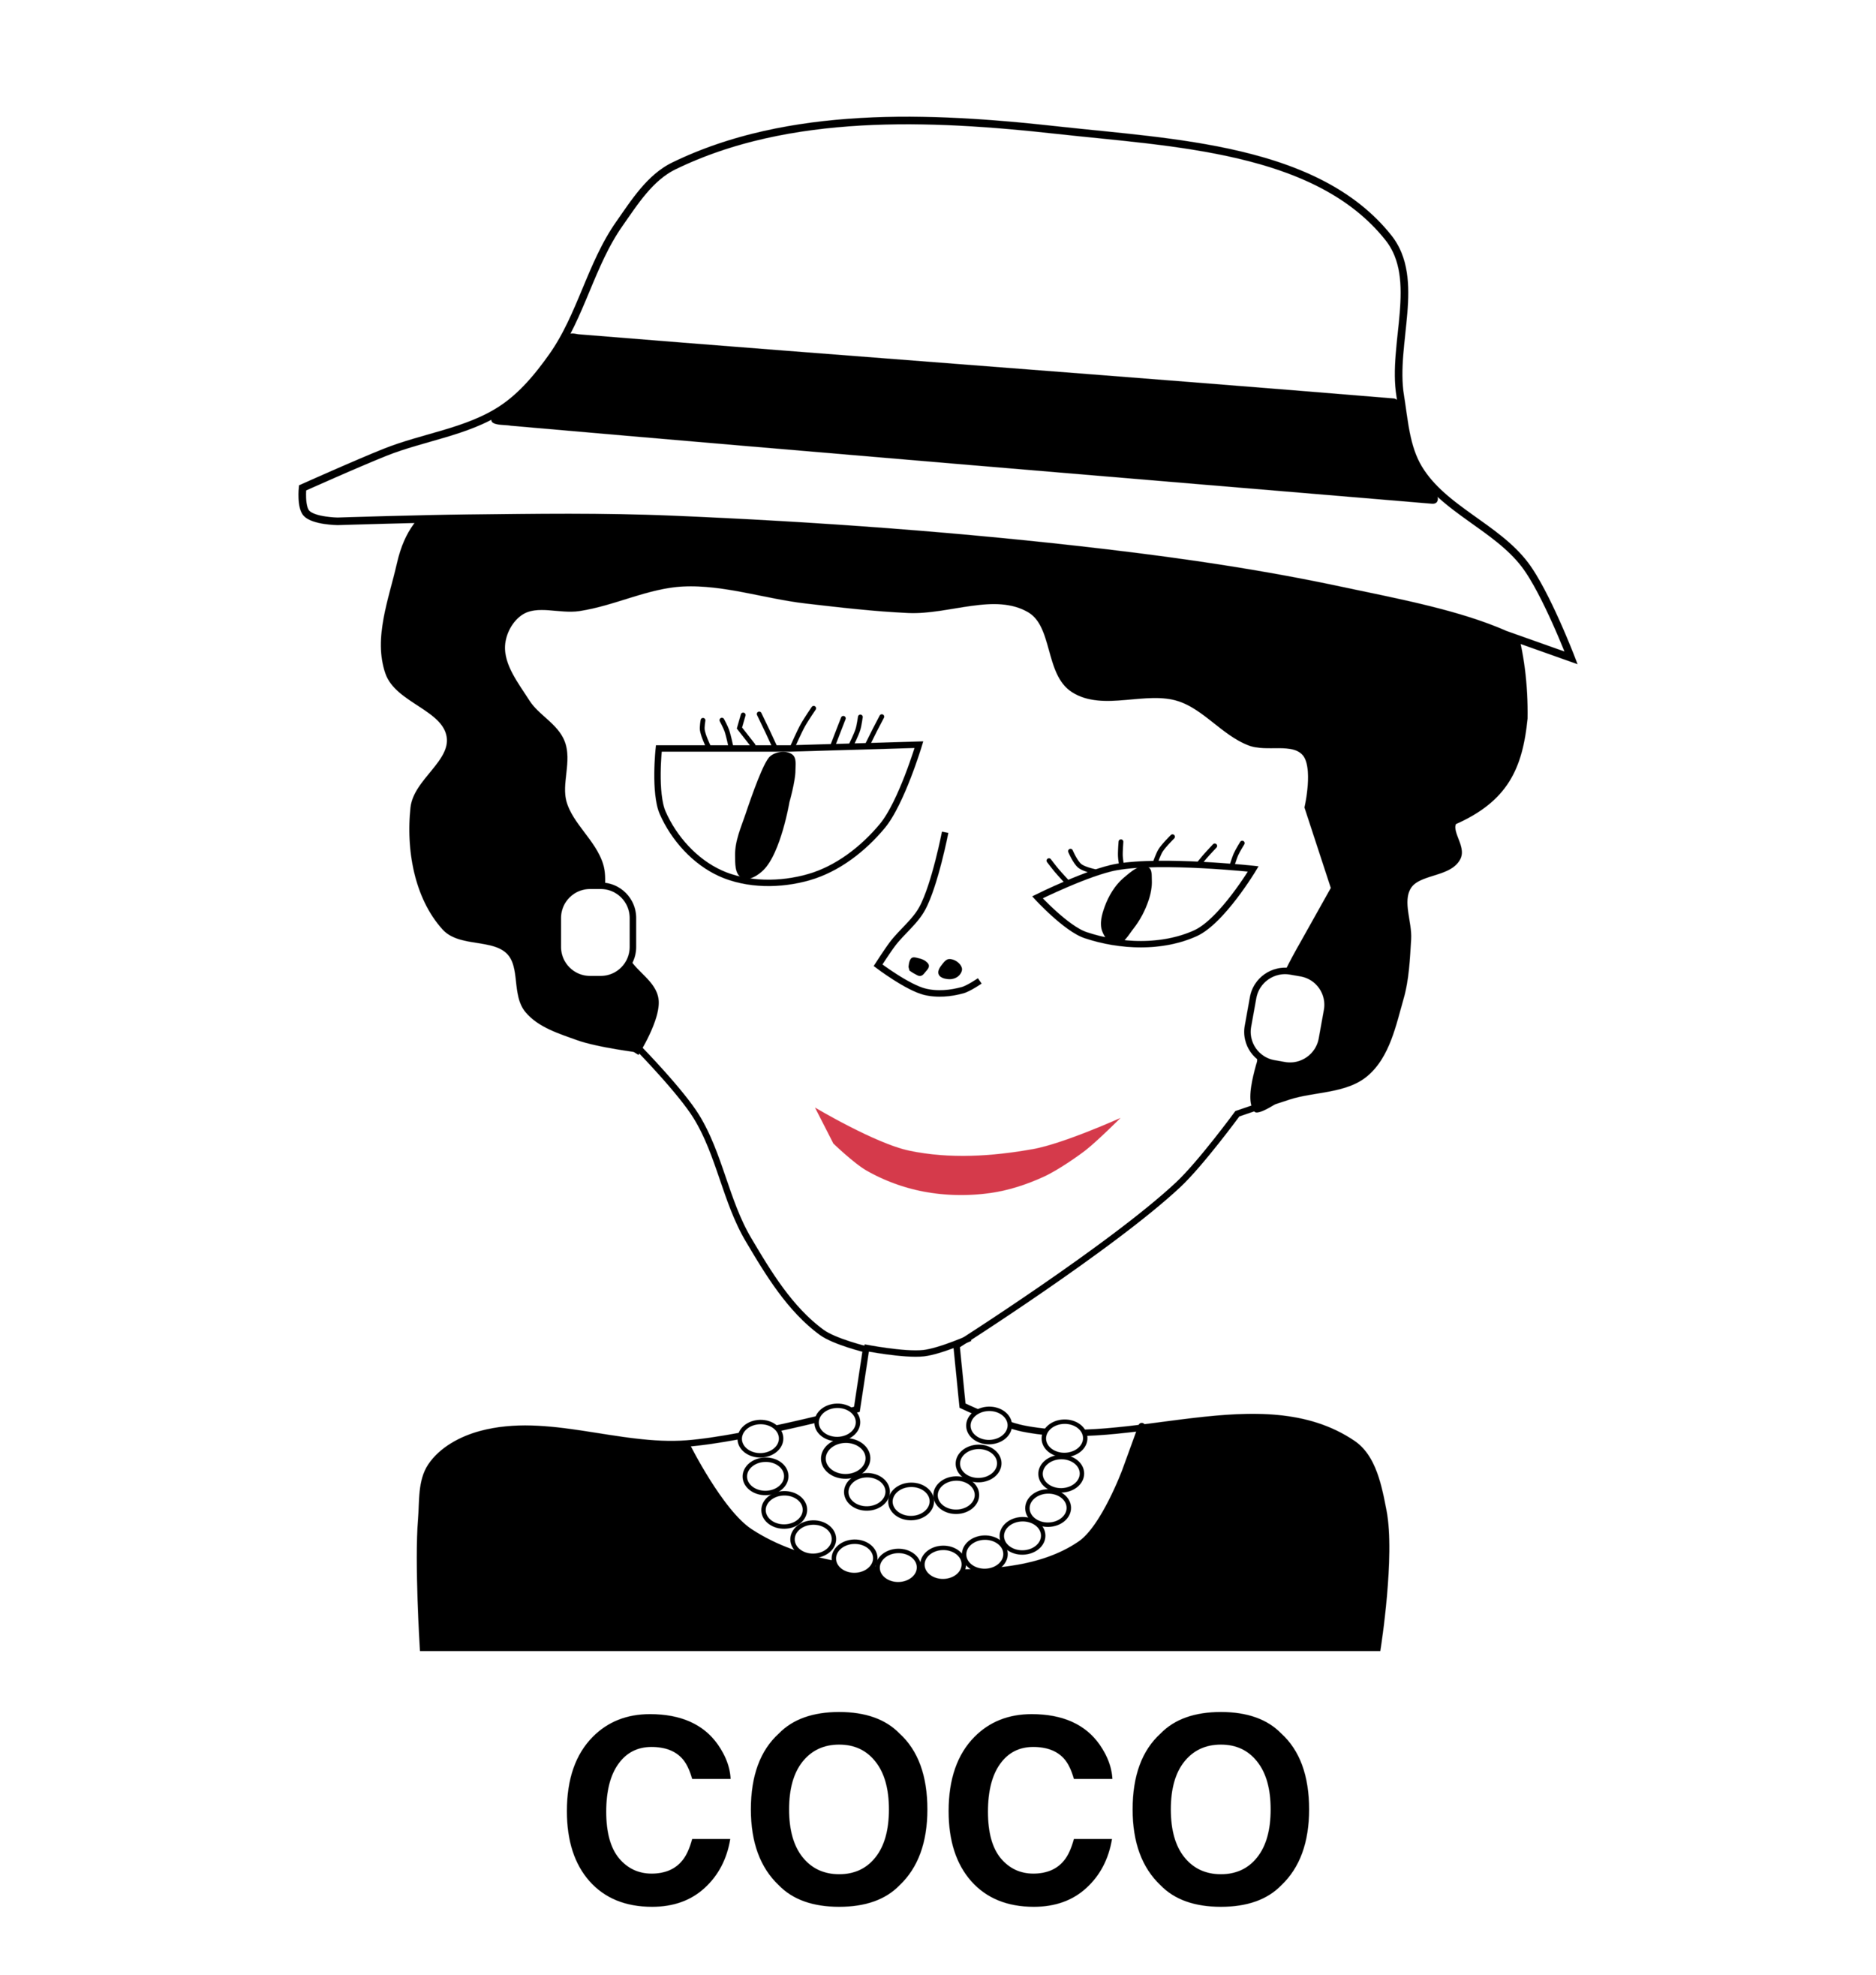 drawing_coco.png